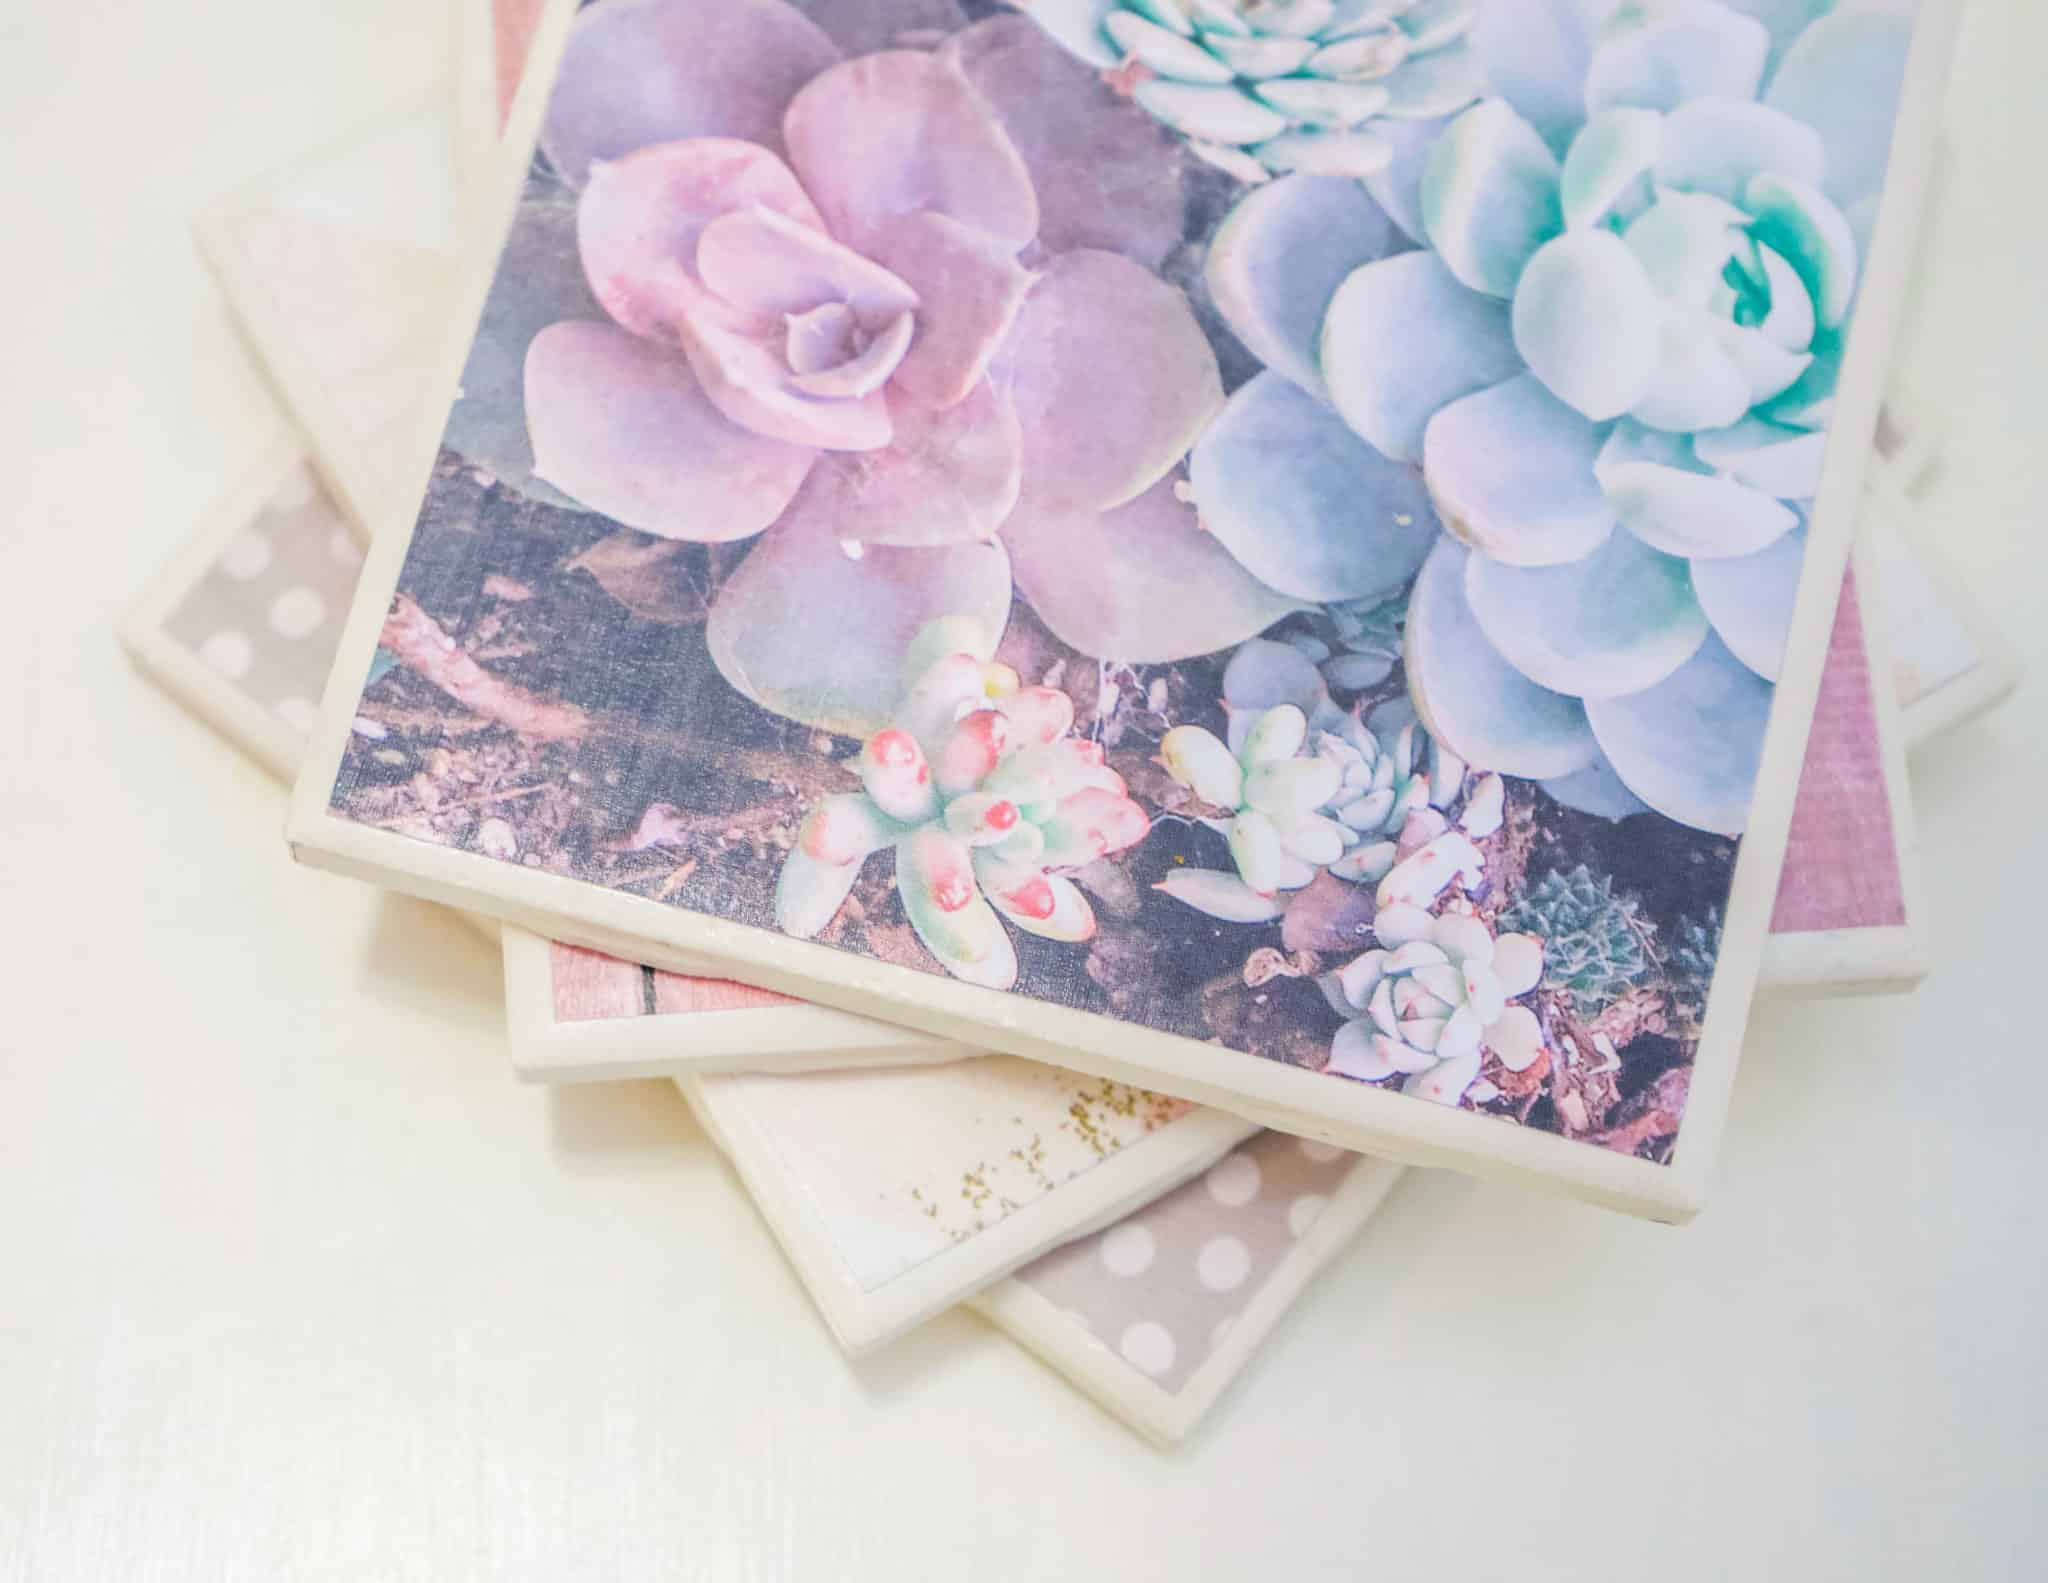 These adorable DIY ceramic tile coasters are so easy to make, you won't believe it! They are totally functional, completely adorable, AND they make fabulous inexpensive gifts. What more could you as for?!